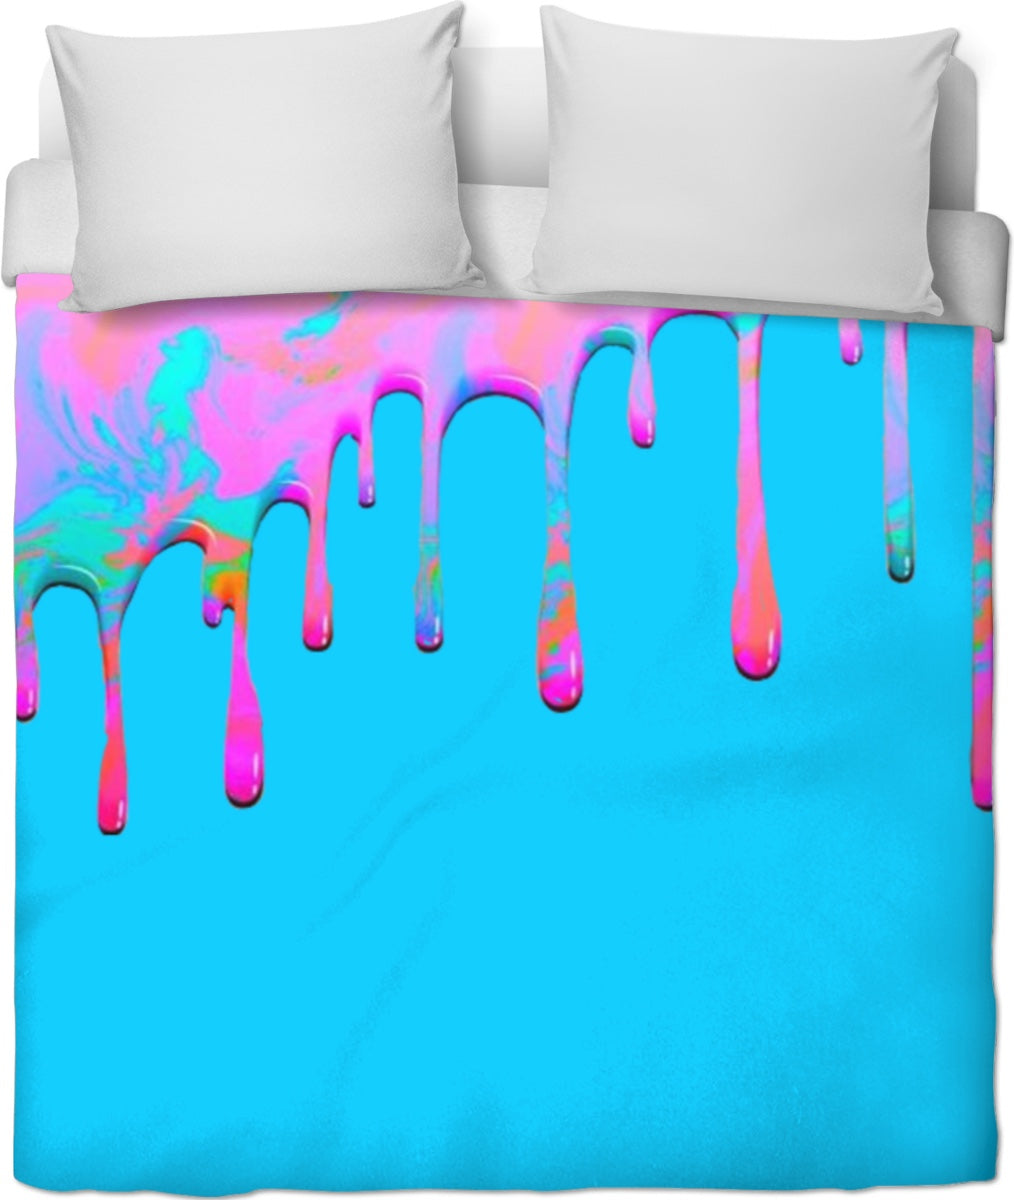 Dripping Paint Blue Duvet Cover